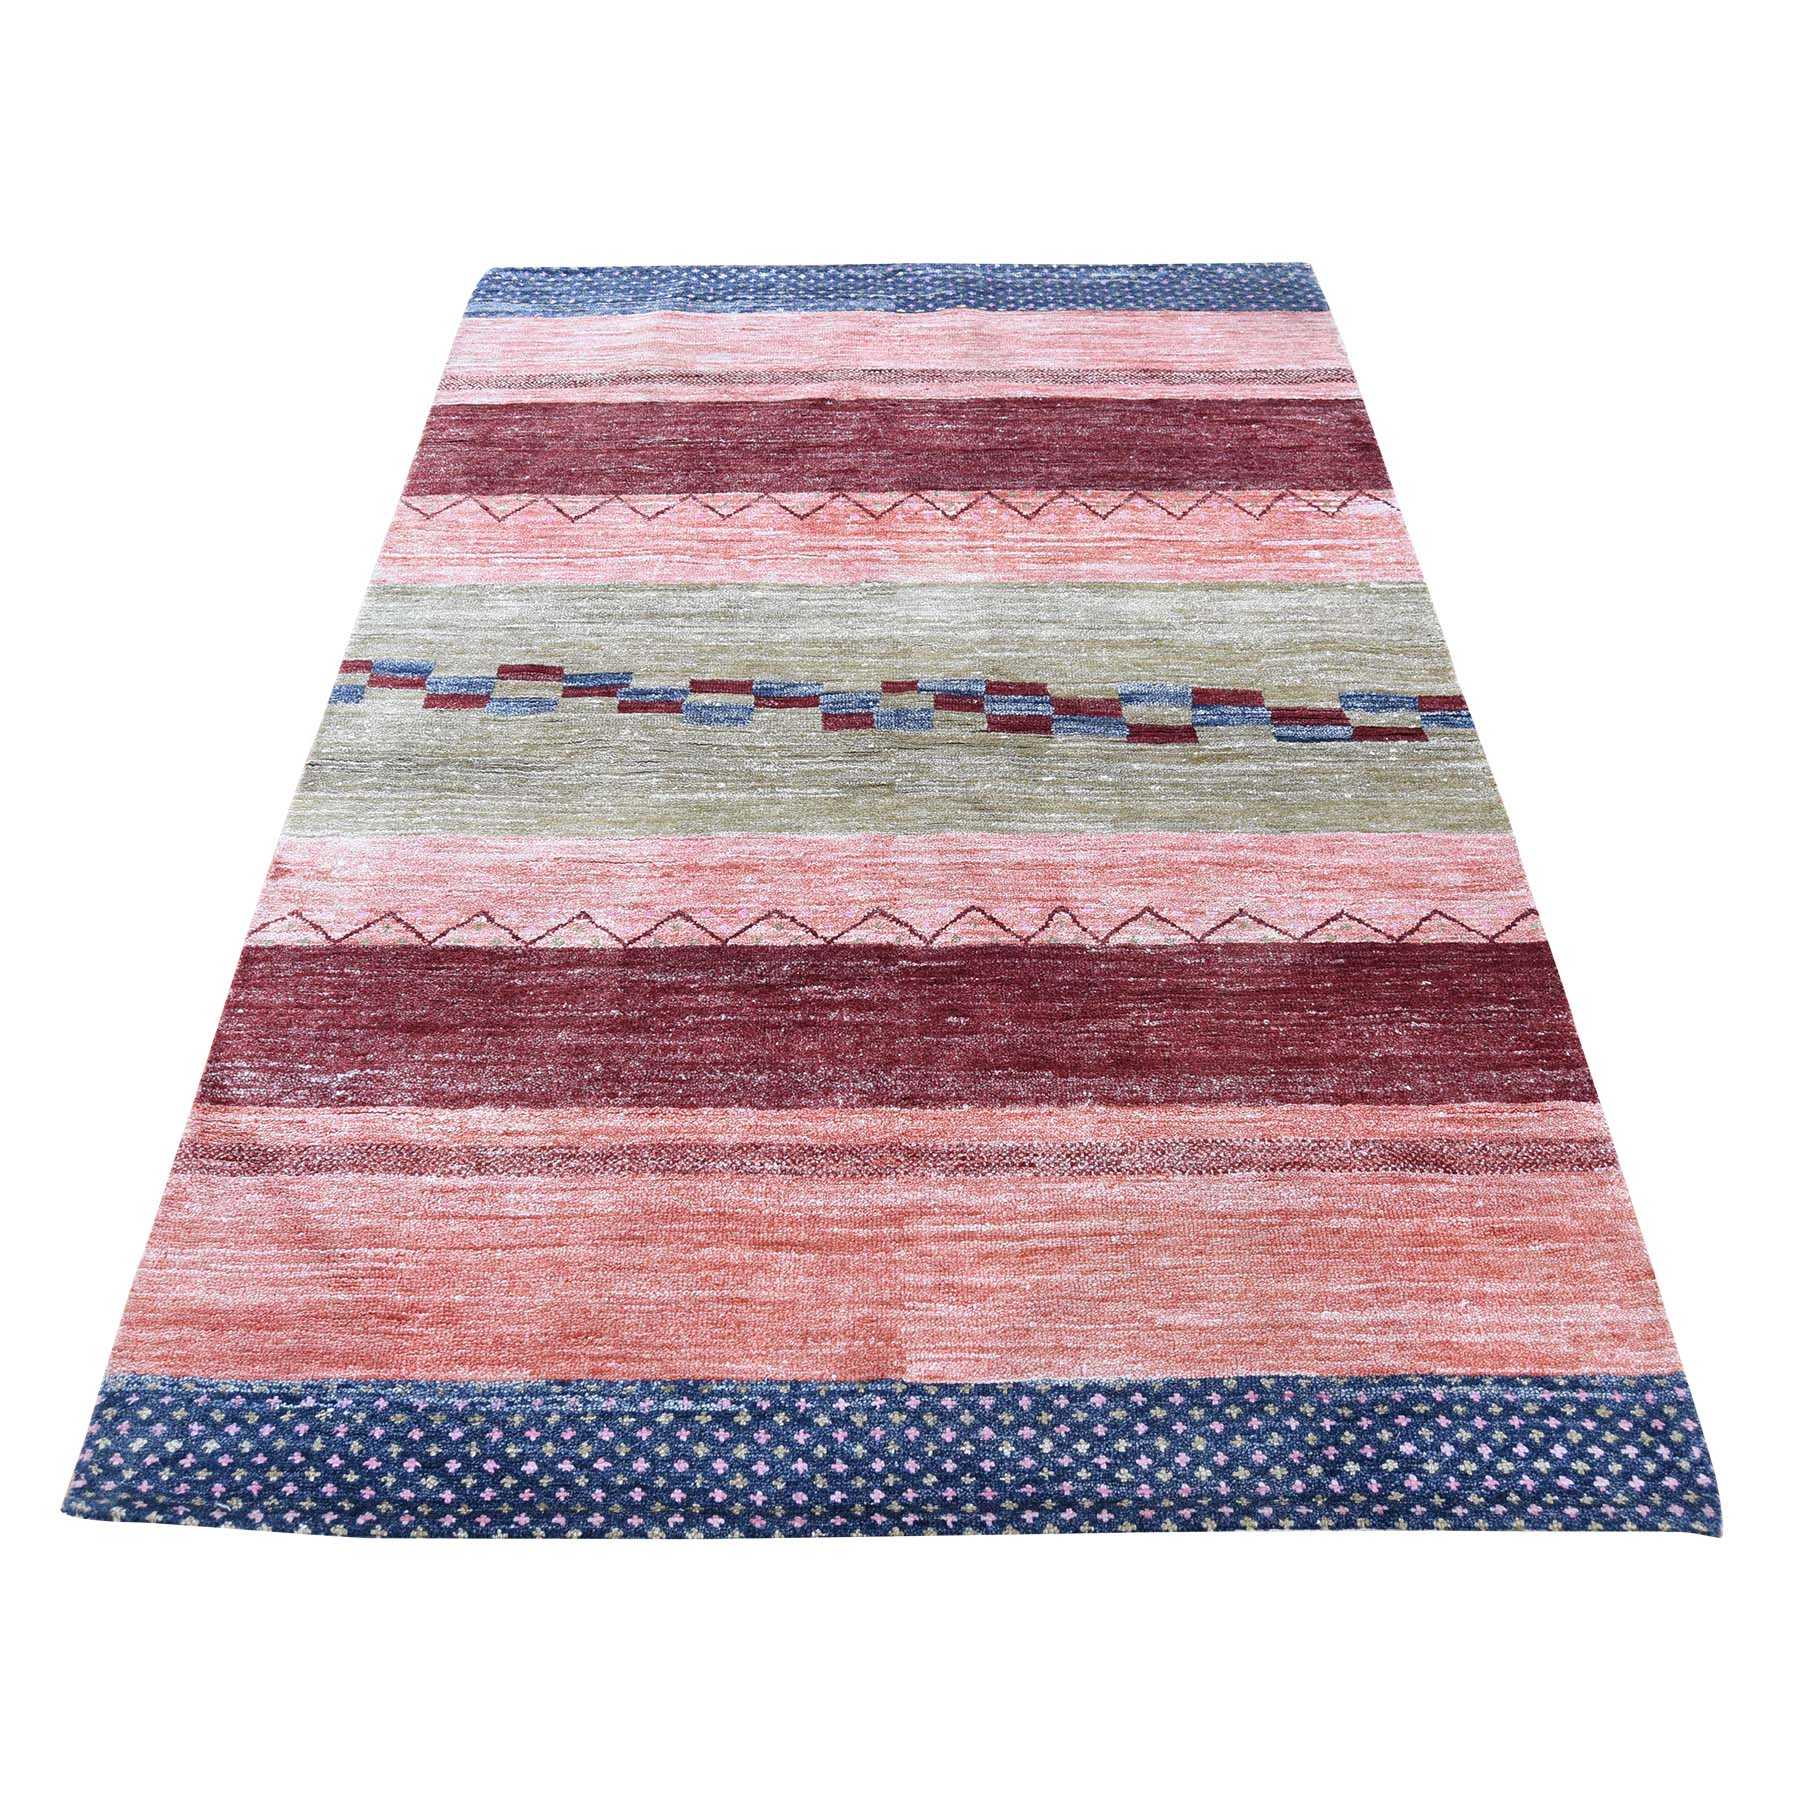 Modern Collection Hand Loomed Multicolored Rug No: 0181502